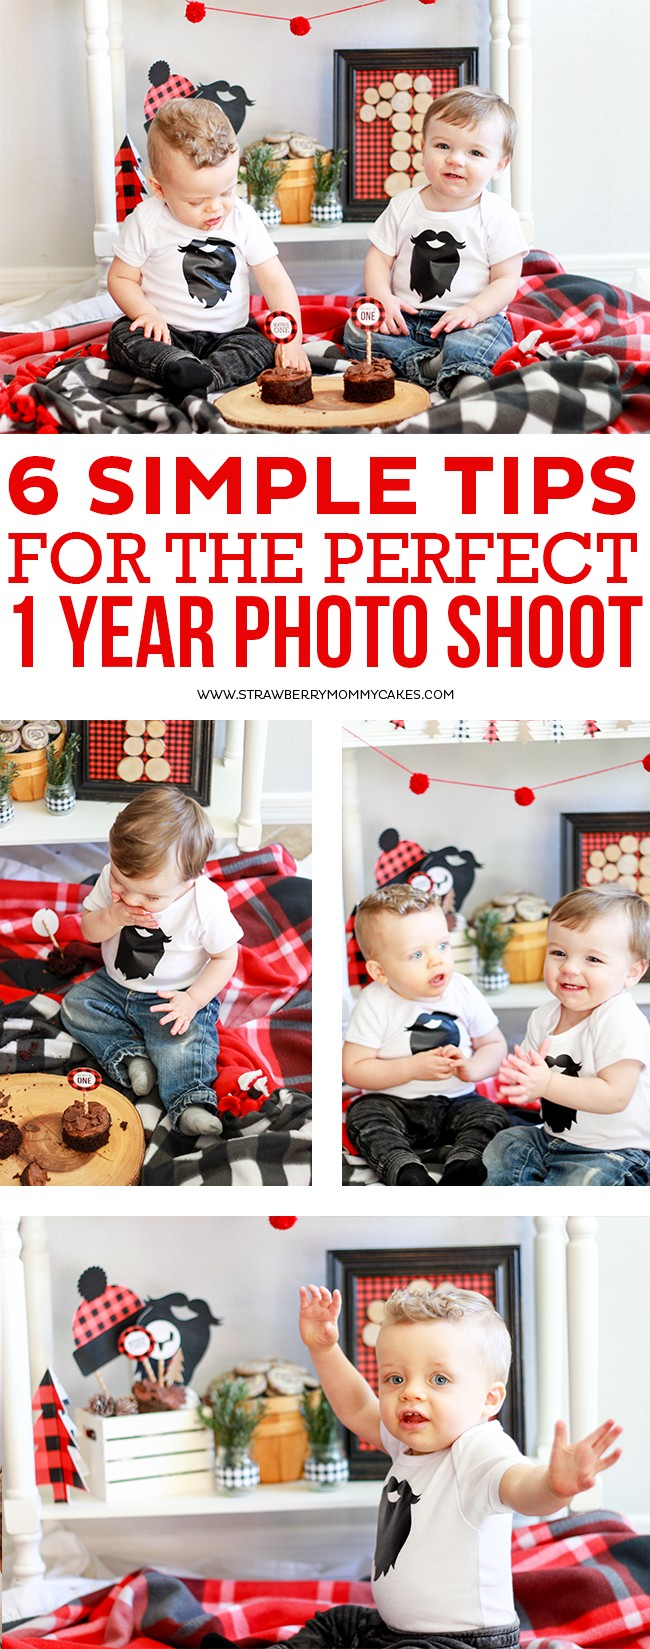 6 Simple Tips for the Perfect One Year Photo Shoot